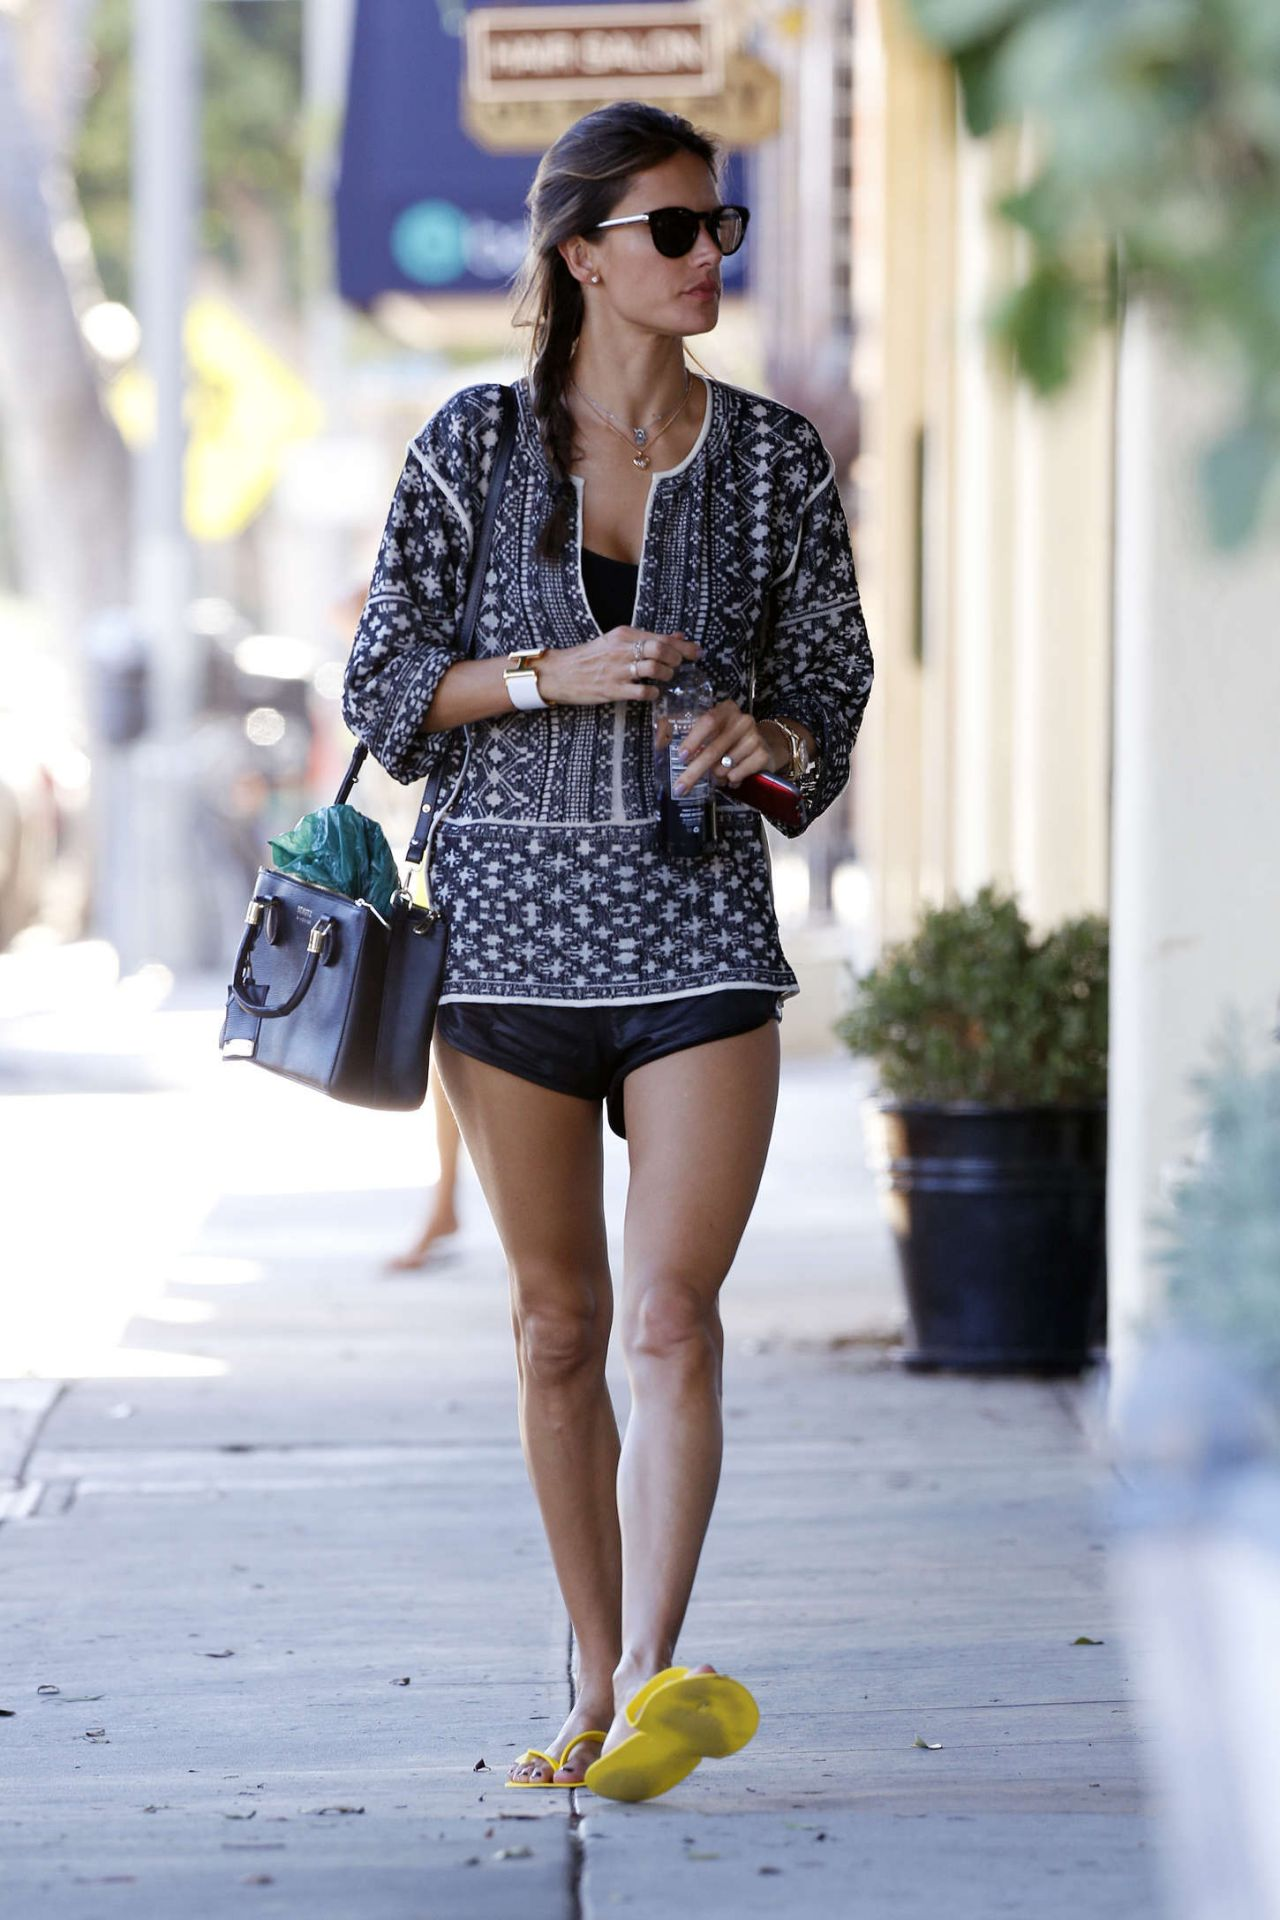 Alessandra Ambrosio Leggy in Shorts - Out in Santa Monica - November 2014